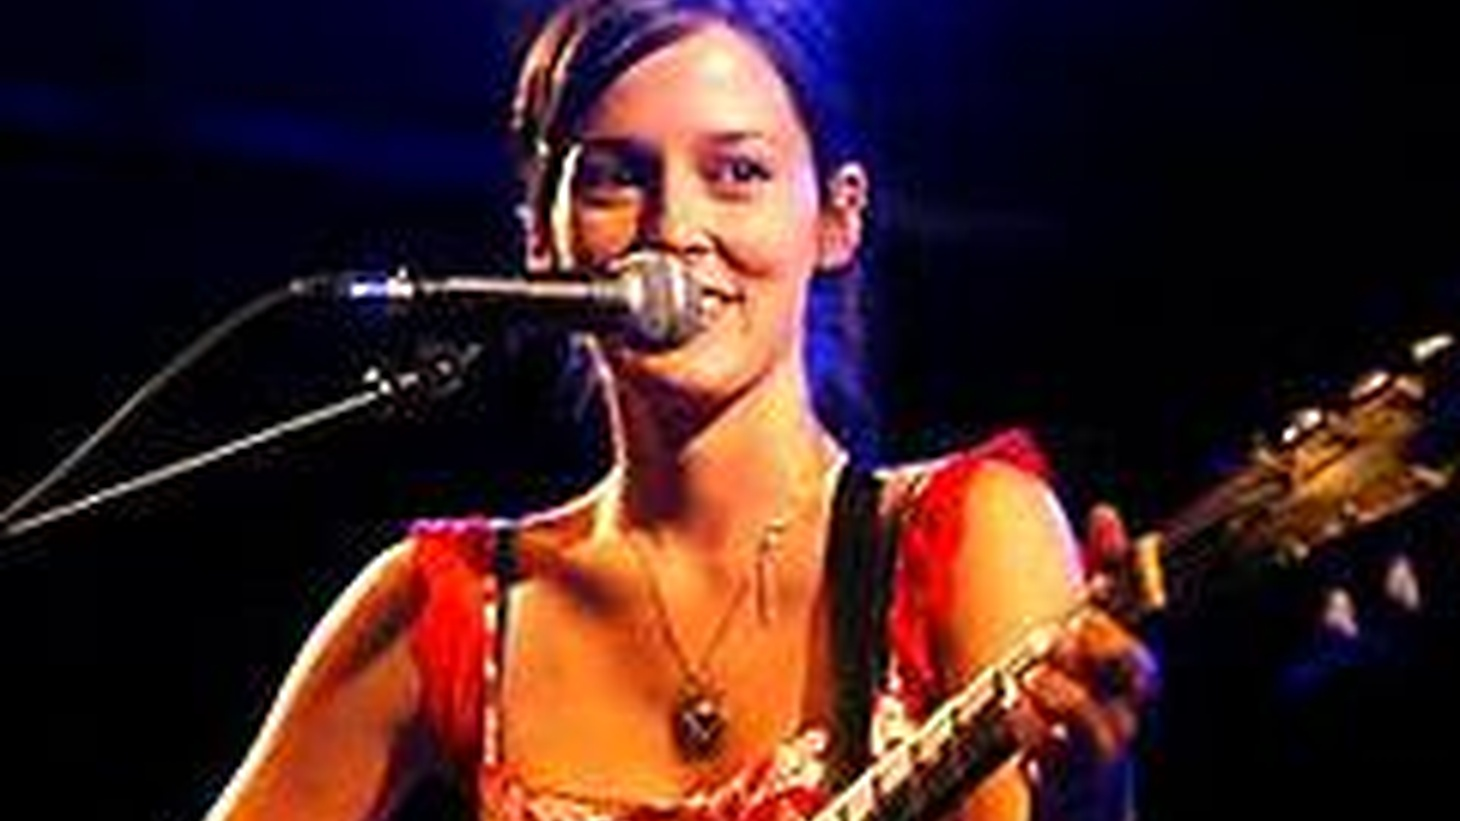 L.A. based singer MEIKO makes her live radio debut when she performs on Morning Becomes Eclectic at 11:15am.